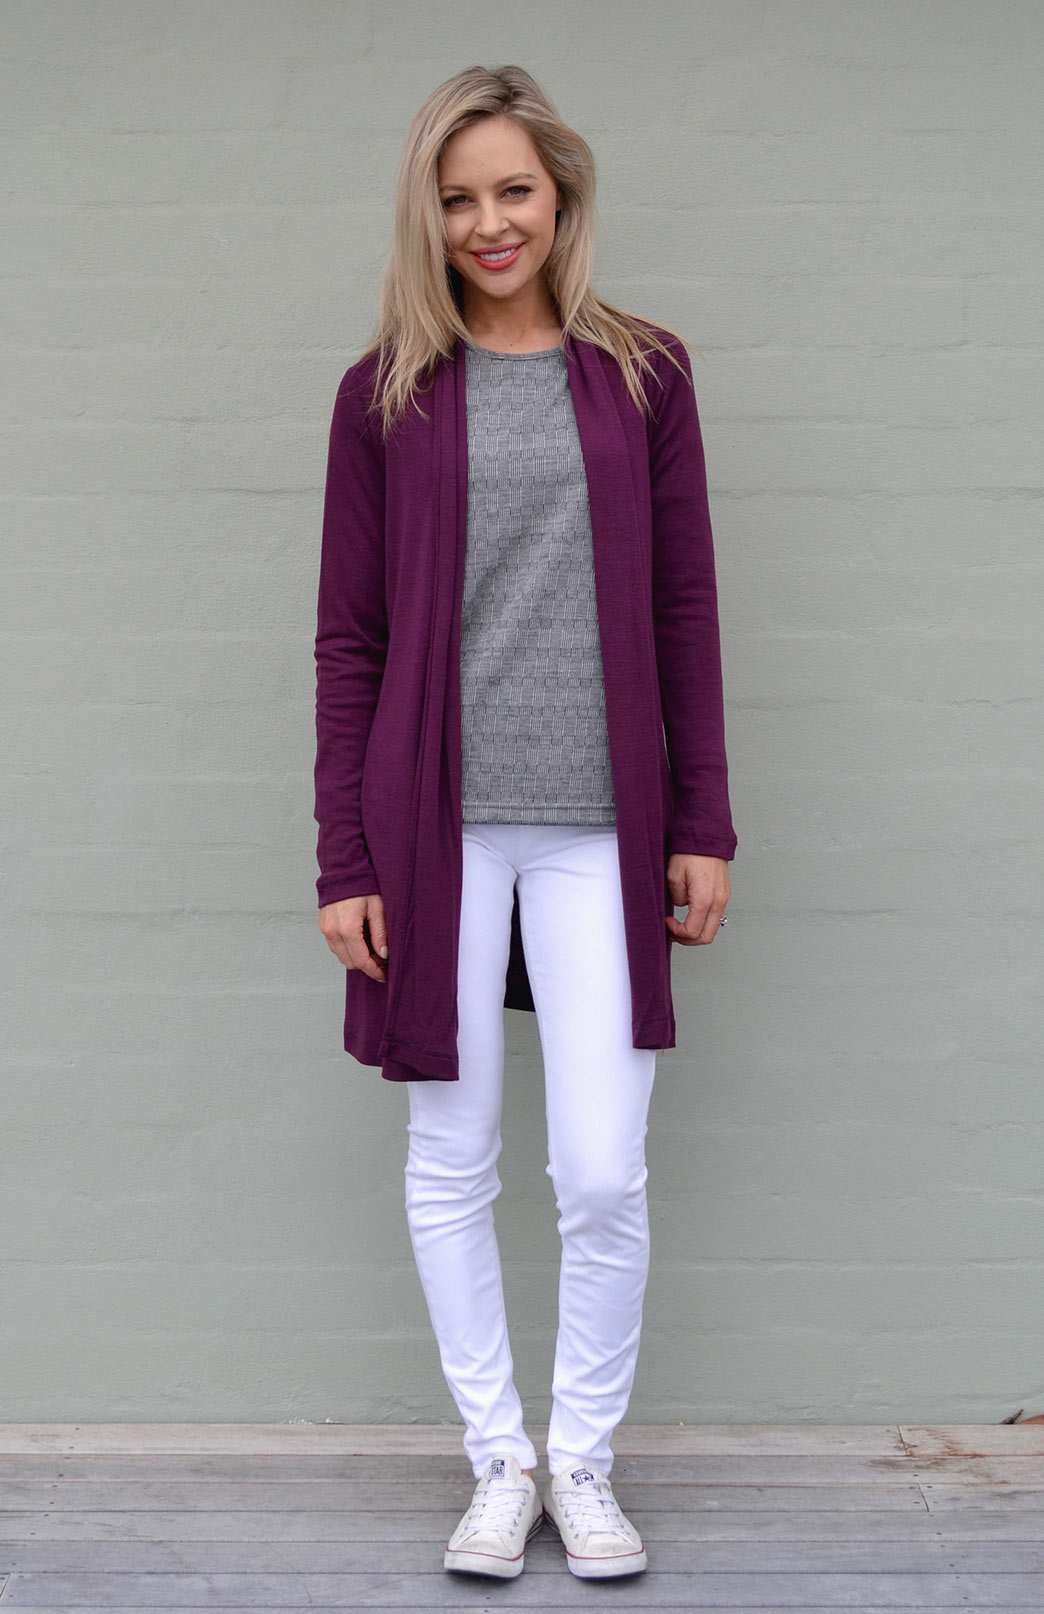 Drape Cardigan - Women's Aubergine Purple Wool Drape Cardigan with no zips or fastenings - Smitten Merino Tasmania Australia